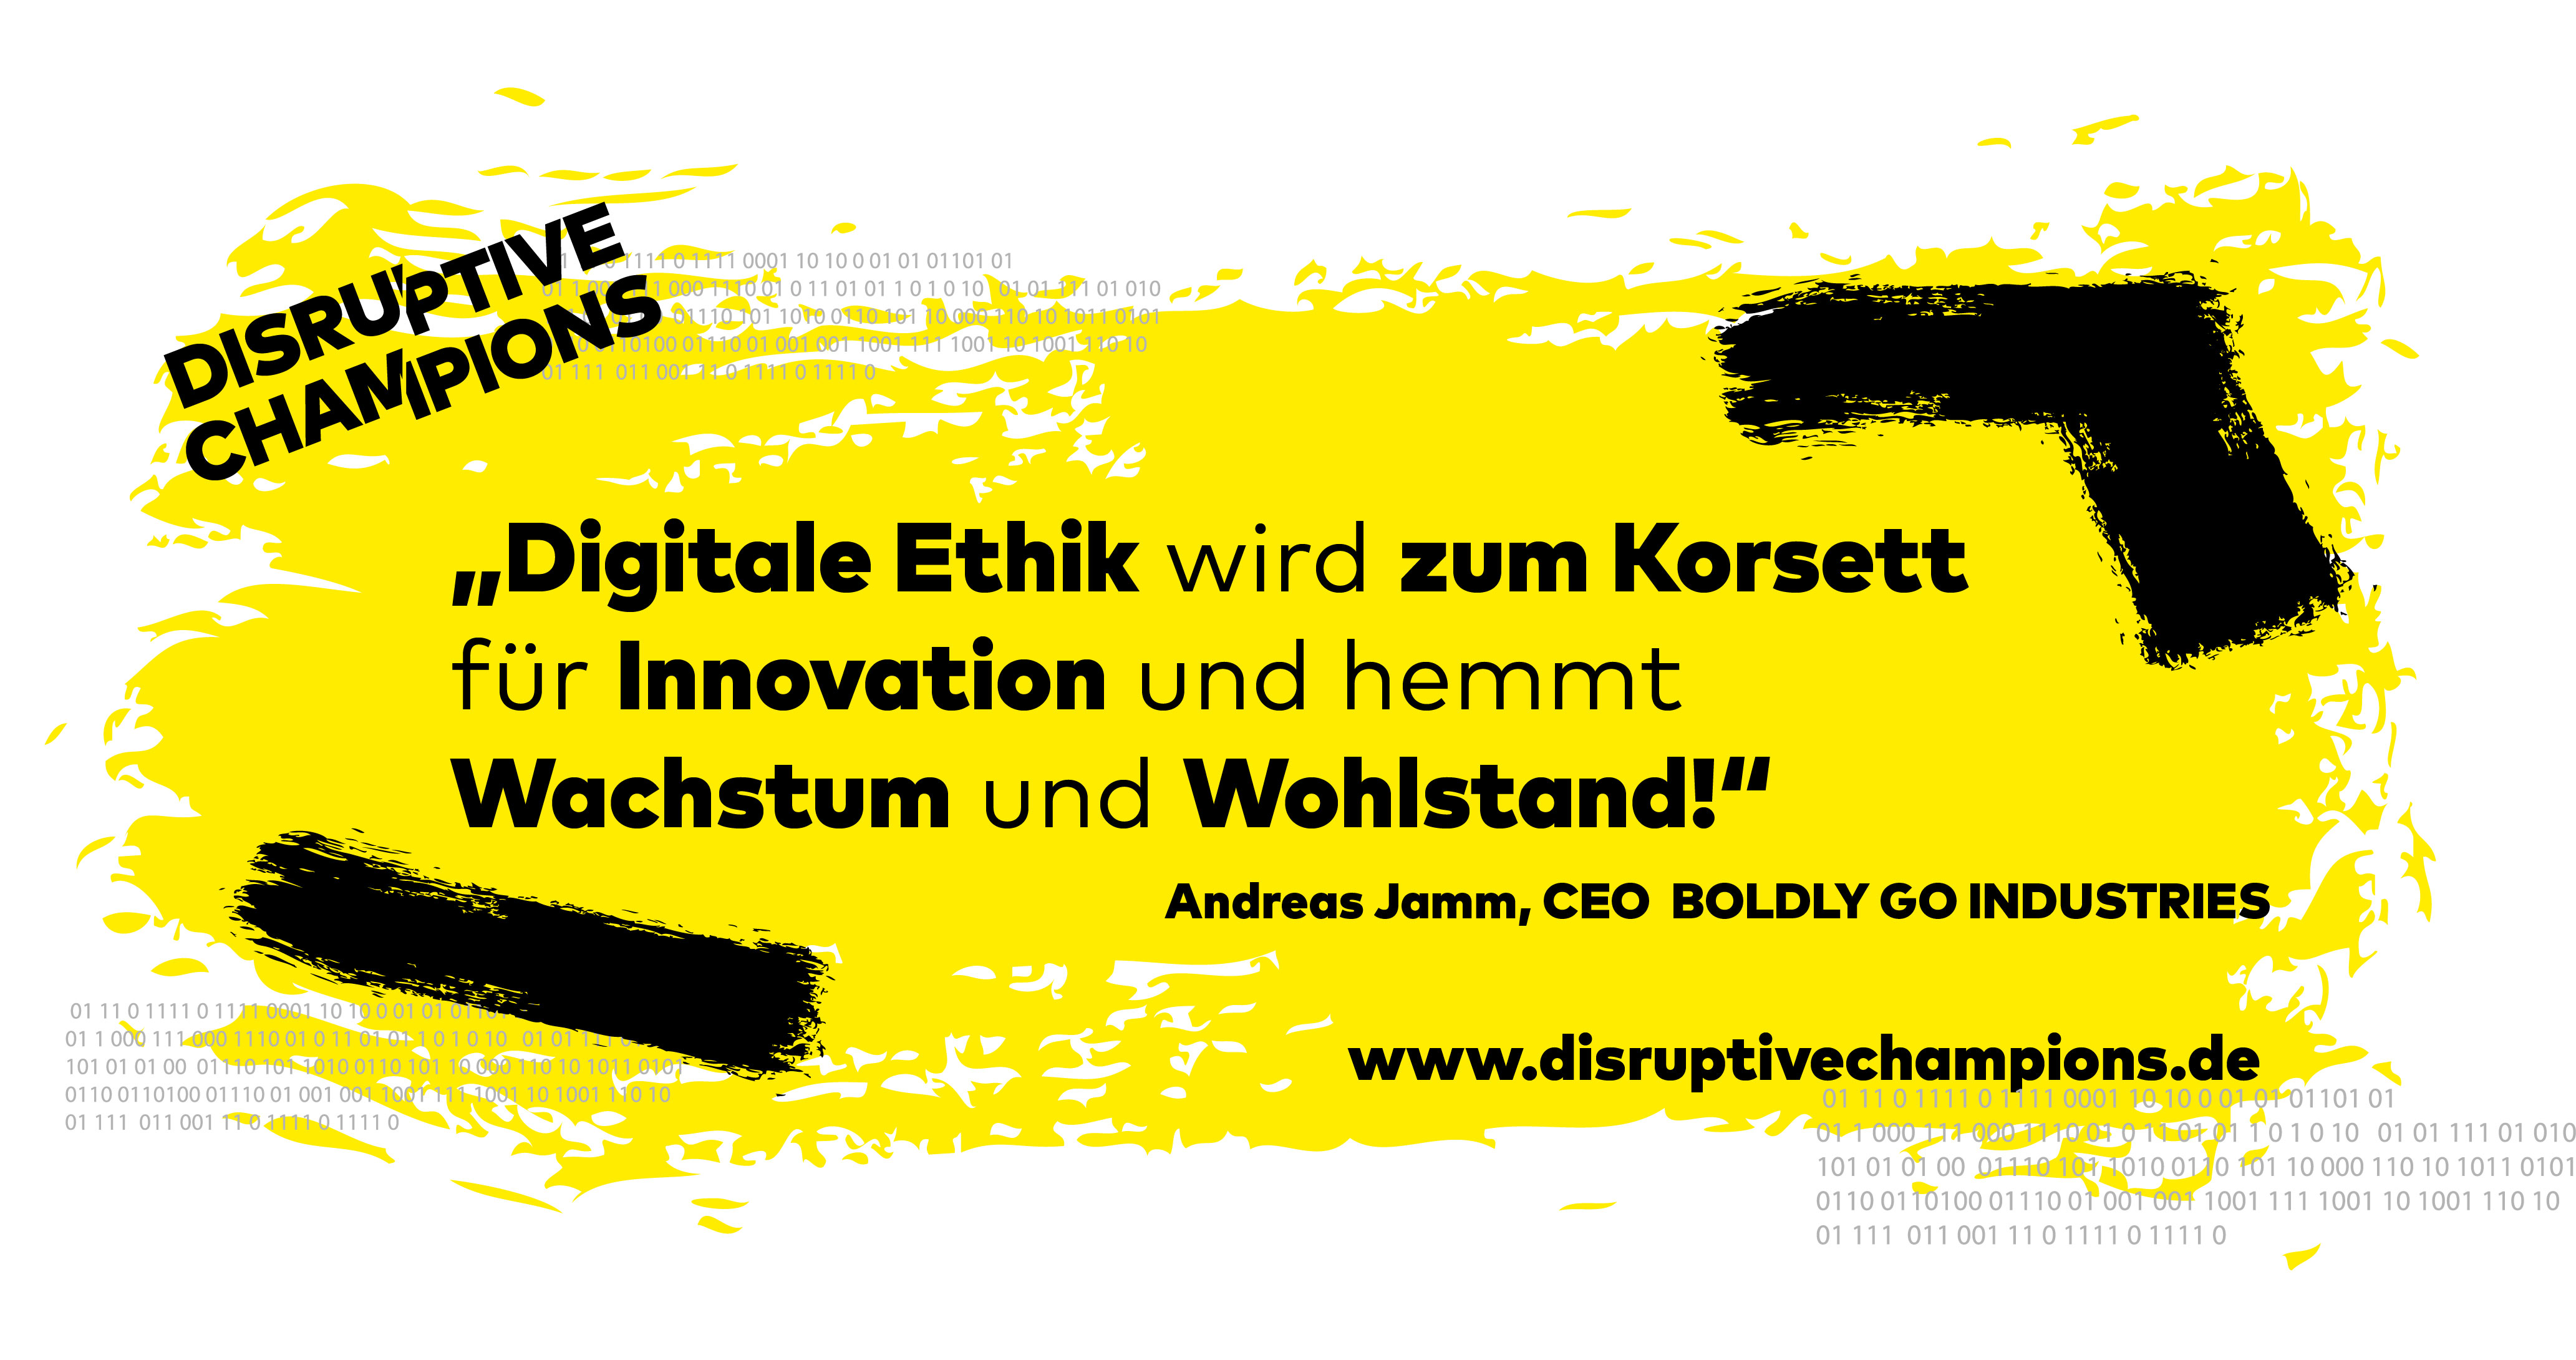 Disruptive Thought, Digitalisierung, Innovation